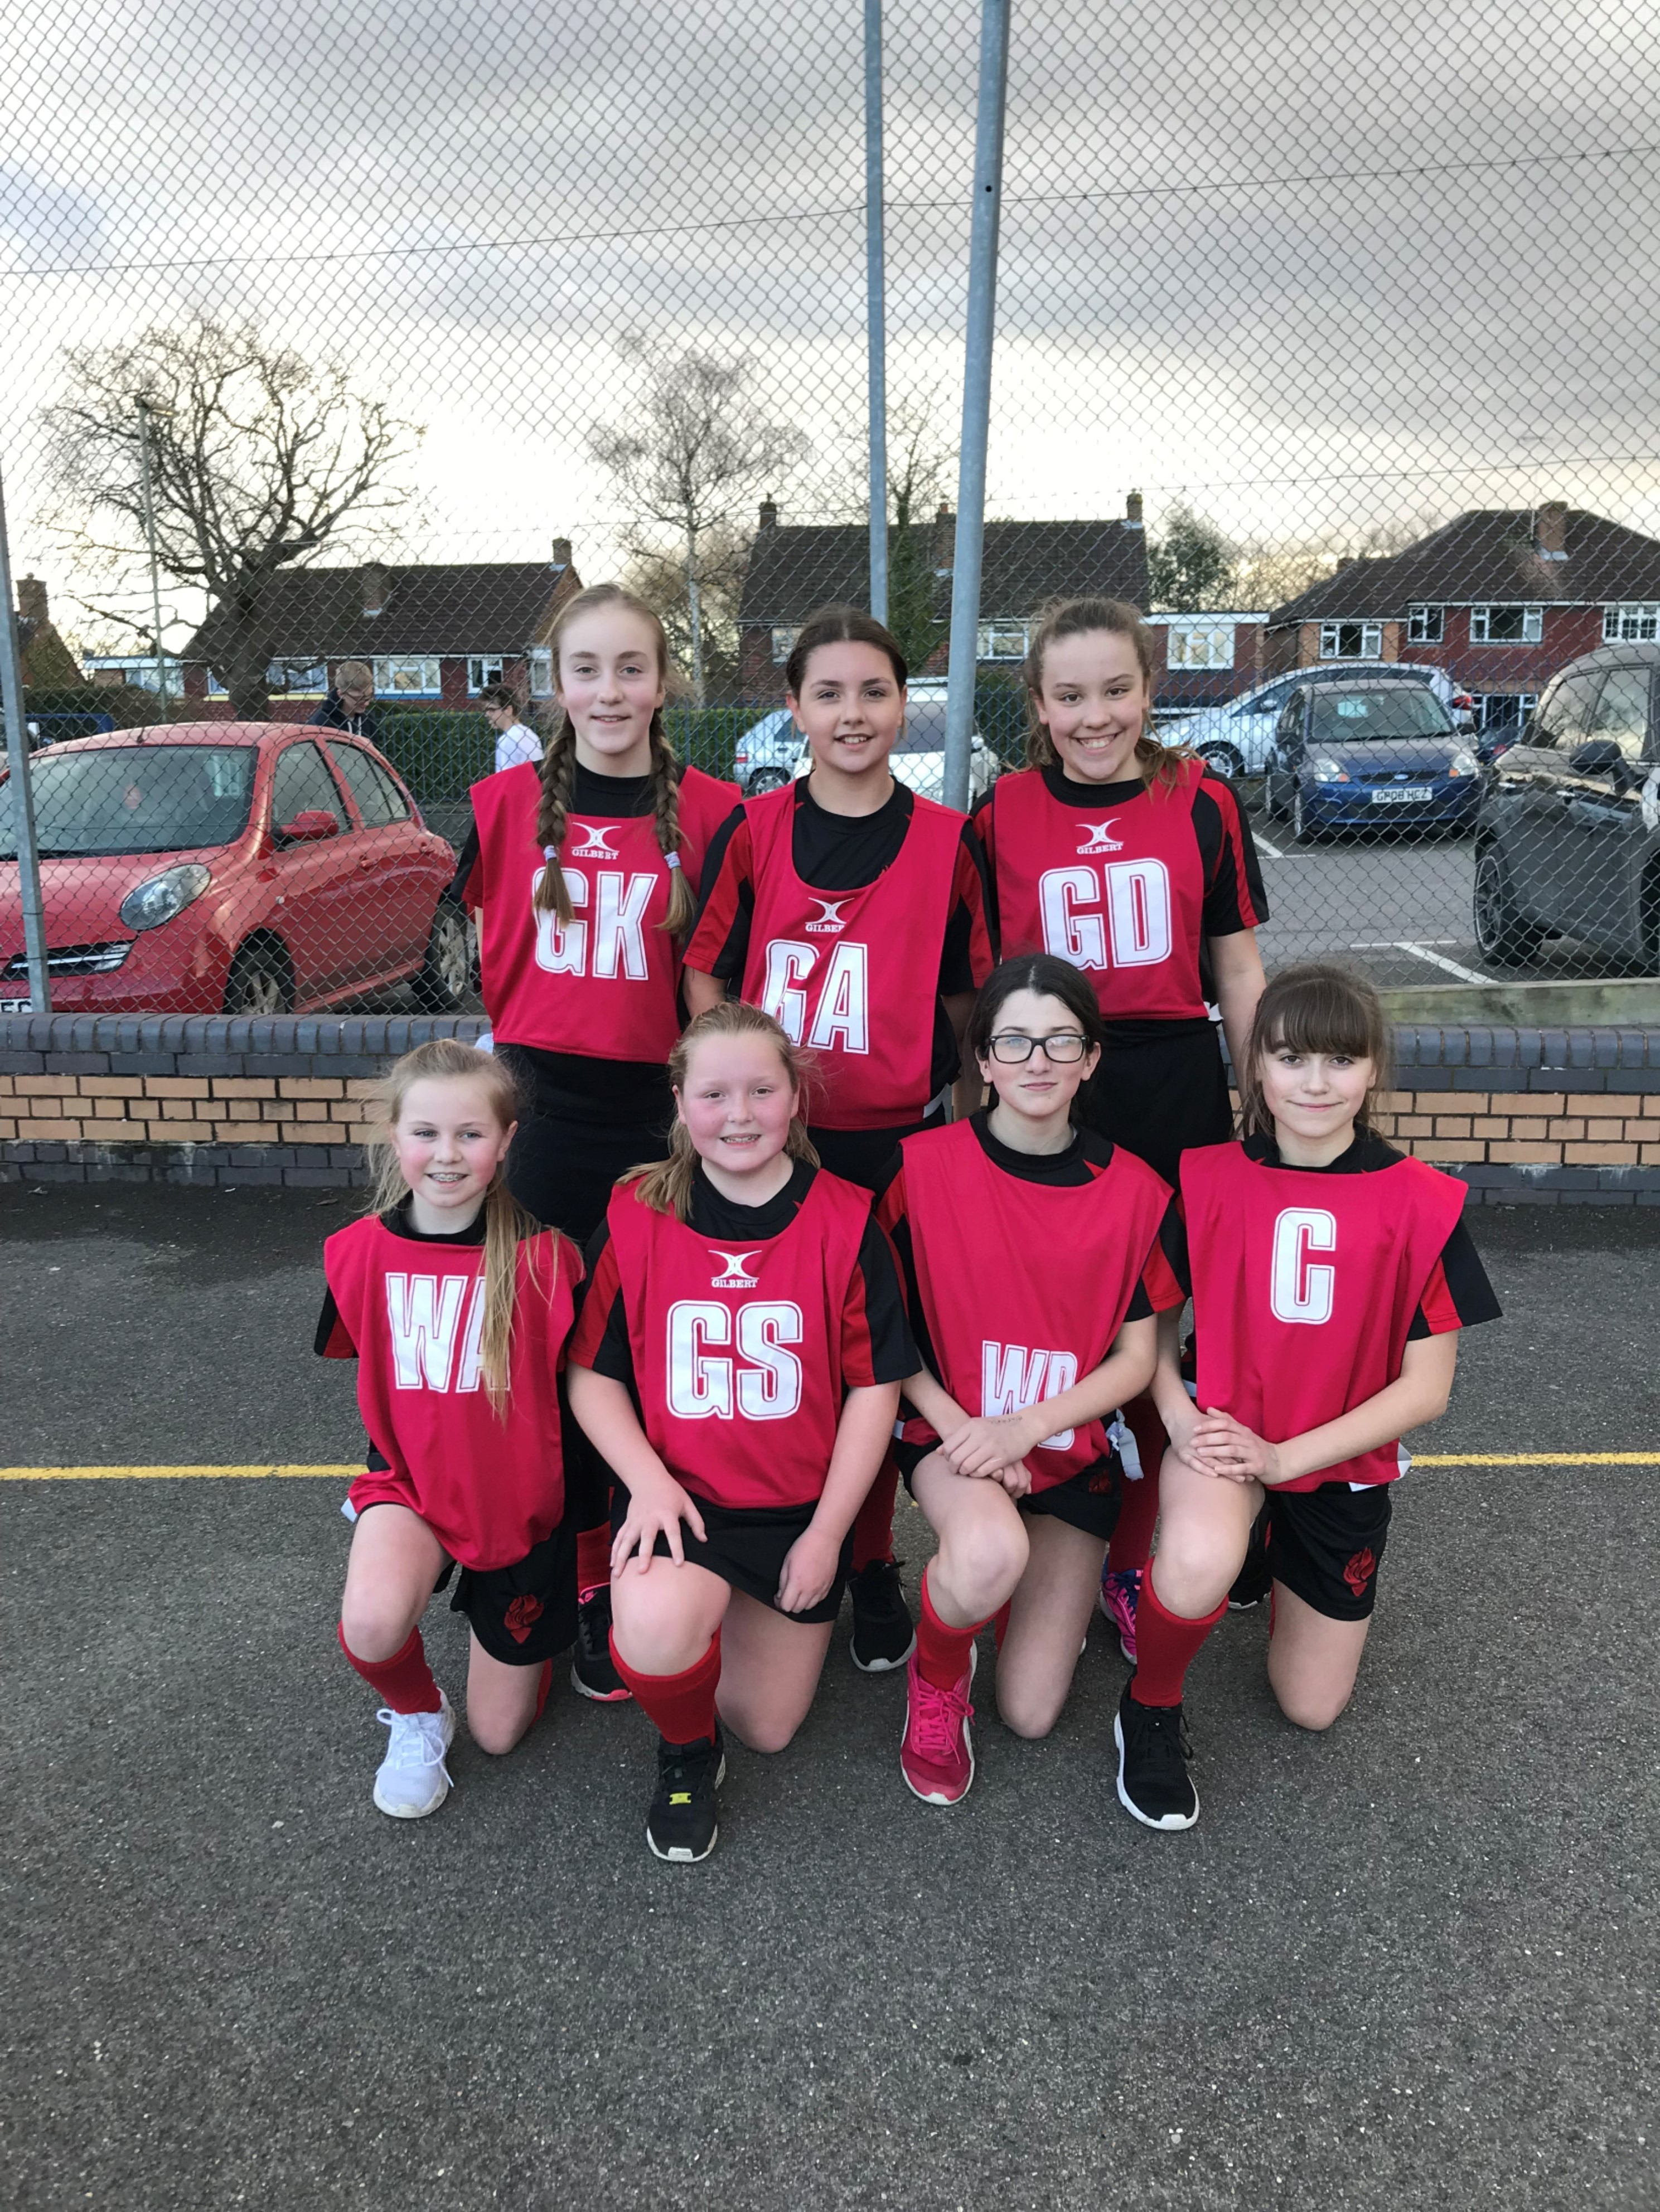 Year 7 district netball team 2018